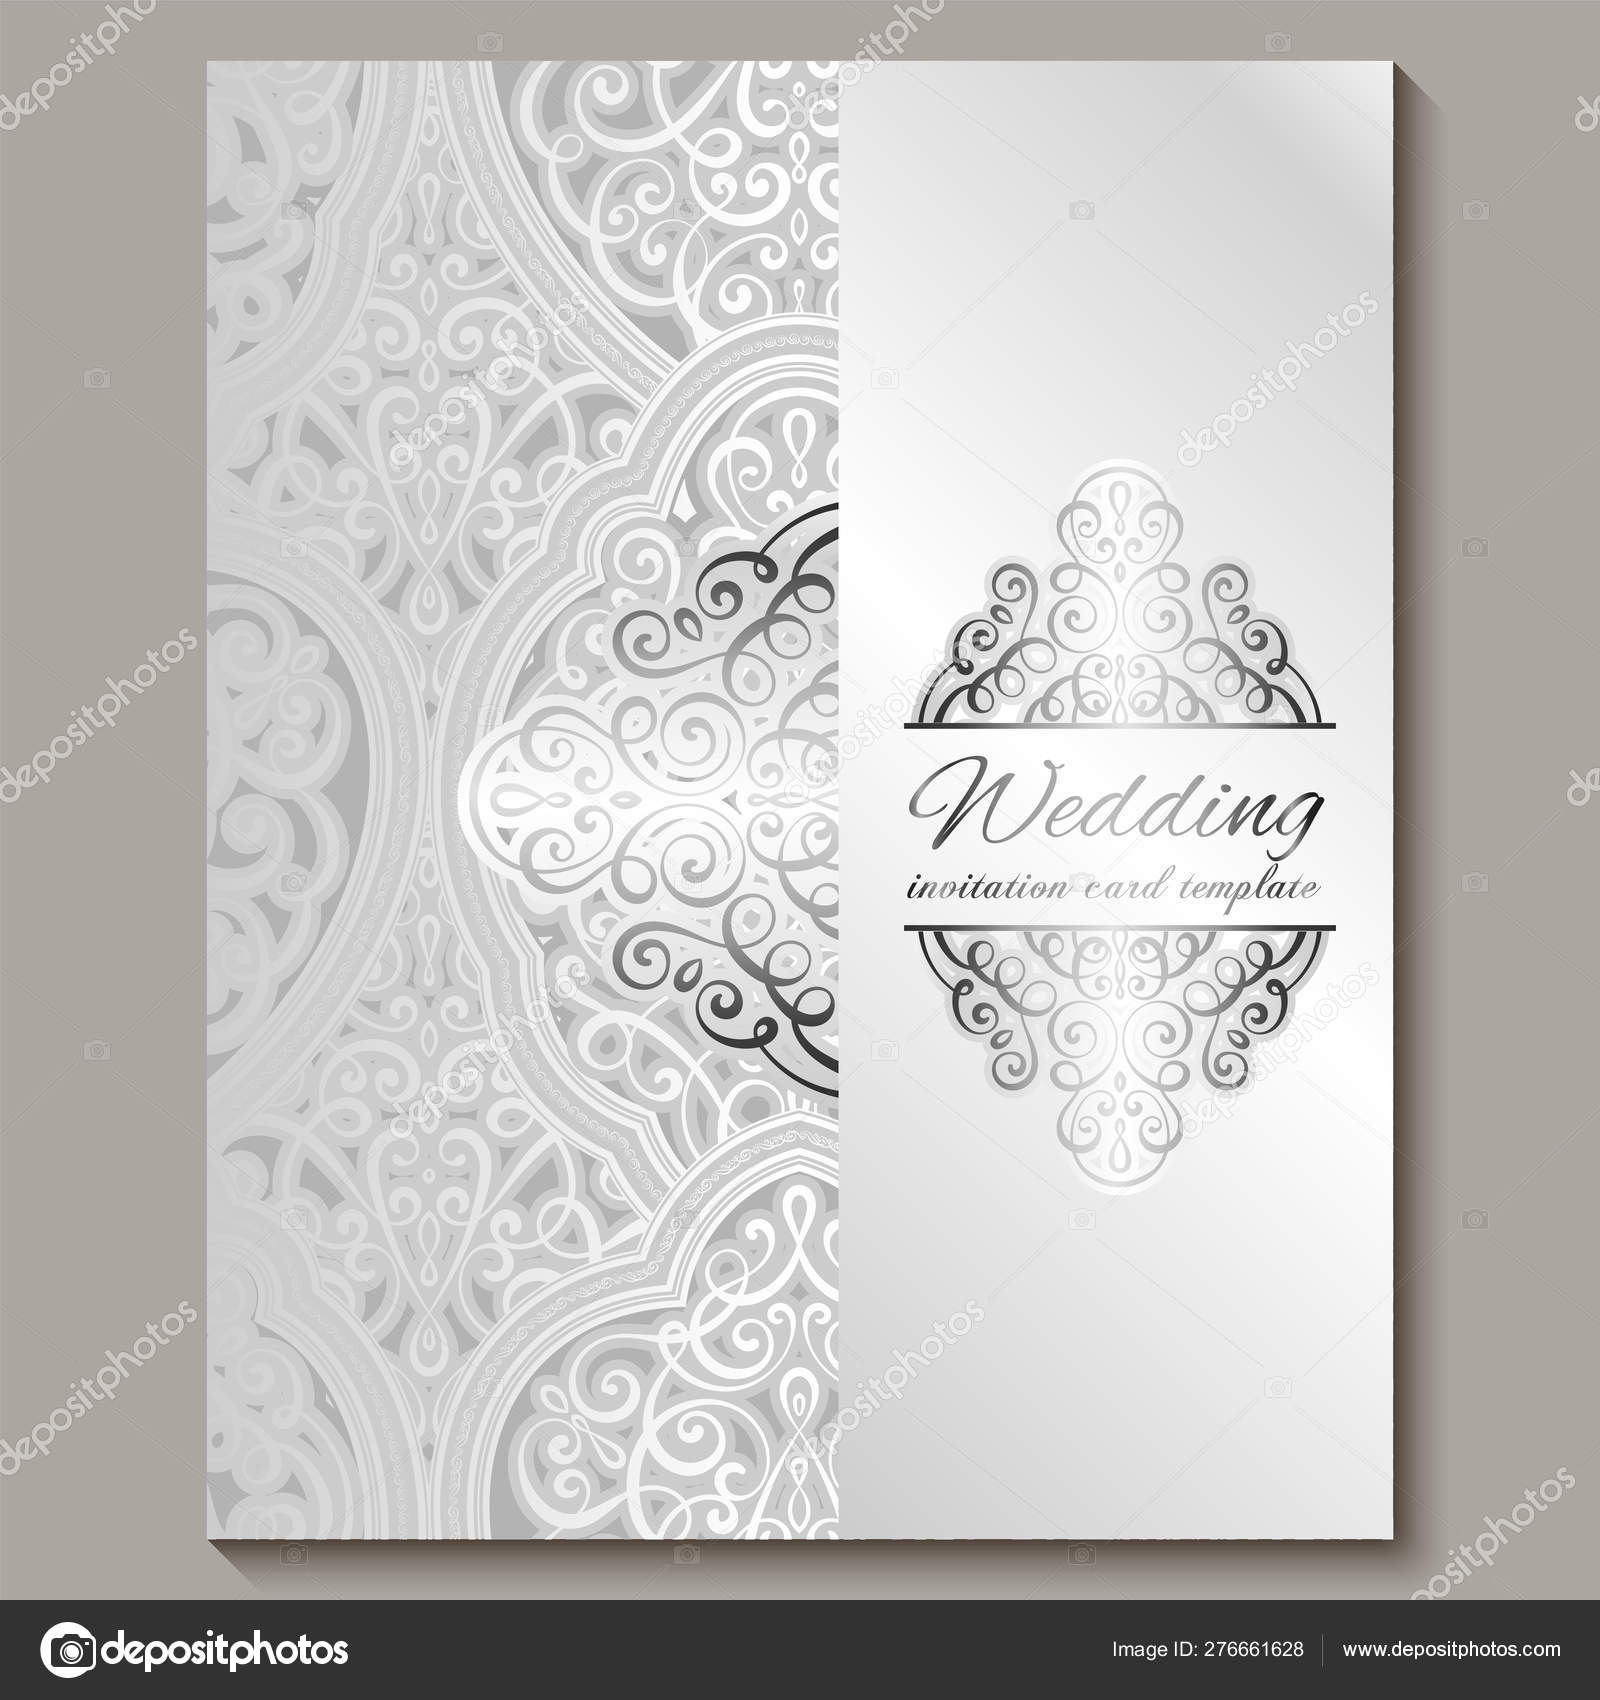 Wedding Invitation Card With Silver Shiny Eastern And